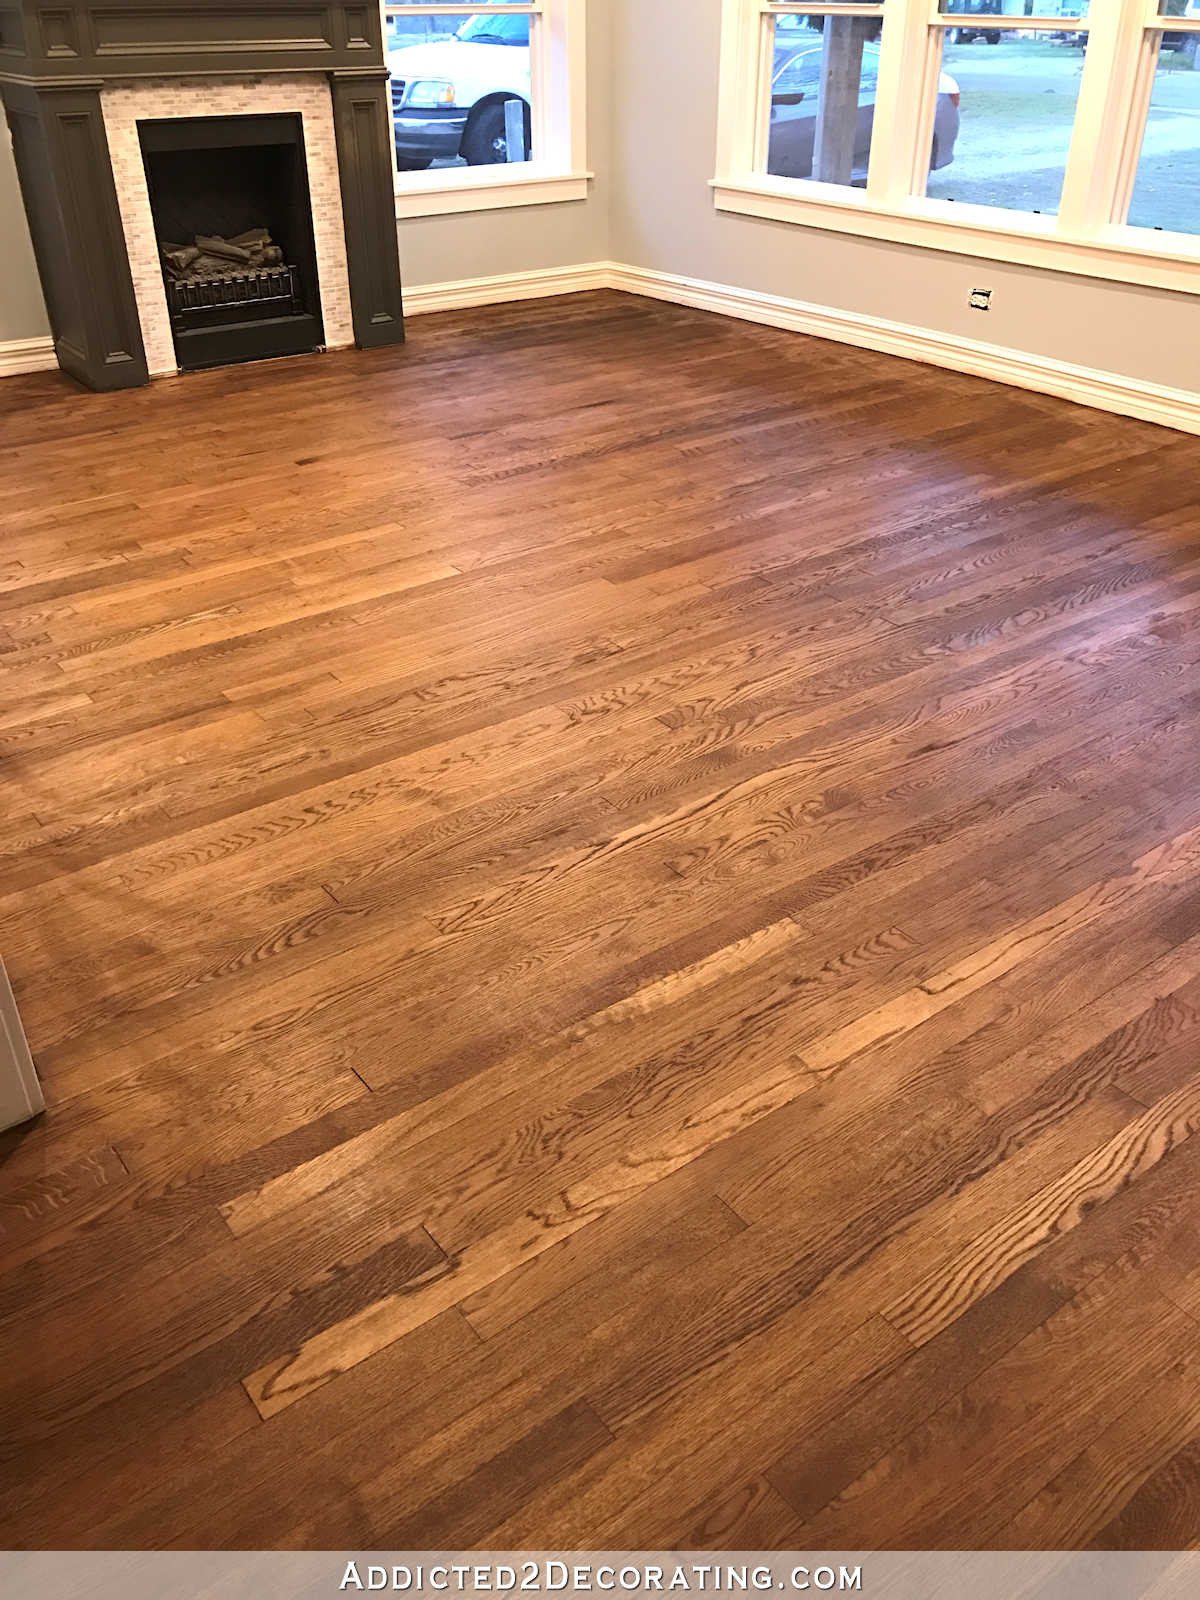 Estimate to Refinish Hardwood Floors Of Adventures In Staining My Red Oak Hardwood Floors Products Process Intended for Staining Red Oak Hardwood Floors 8a Living Room and Entryway